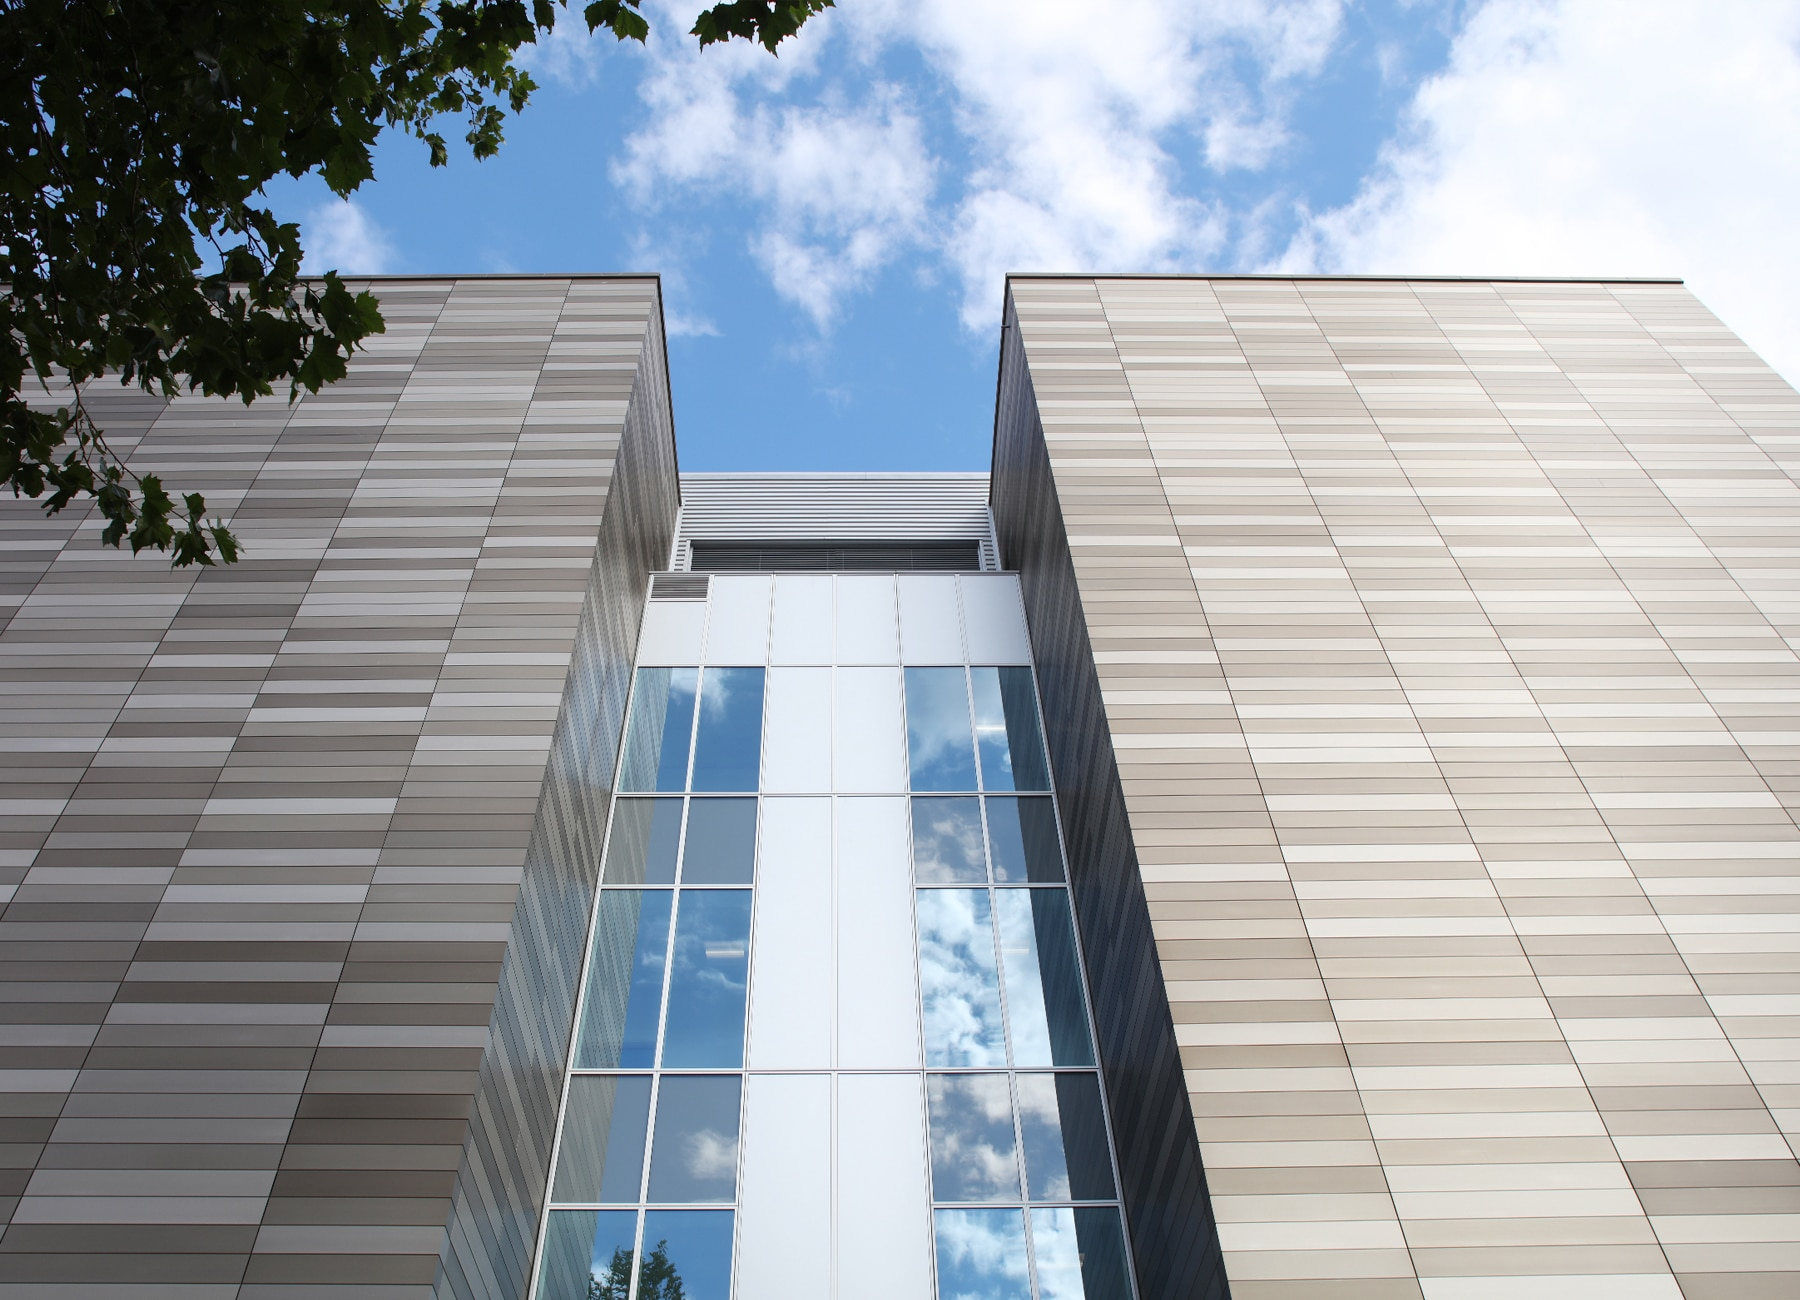 APEX XPC Rainscreen Cladding - Anodised Finish